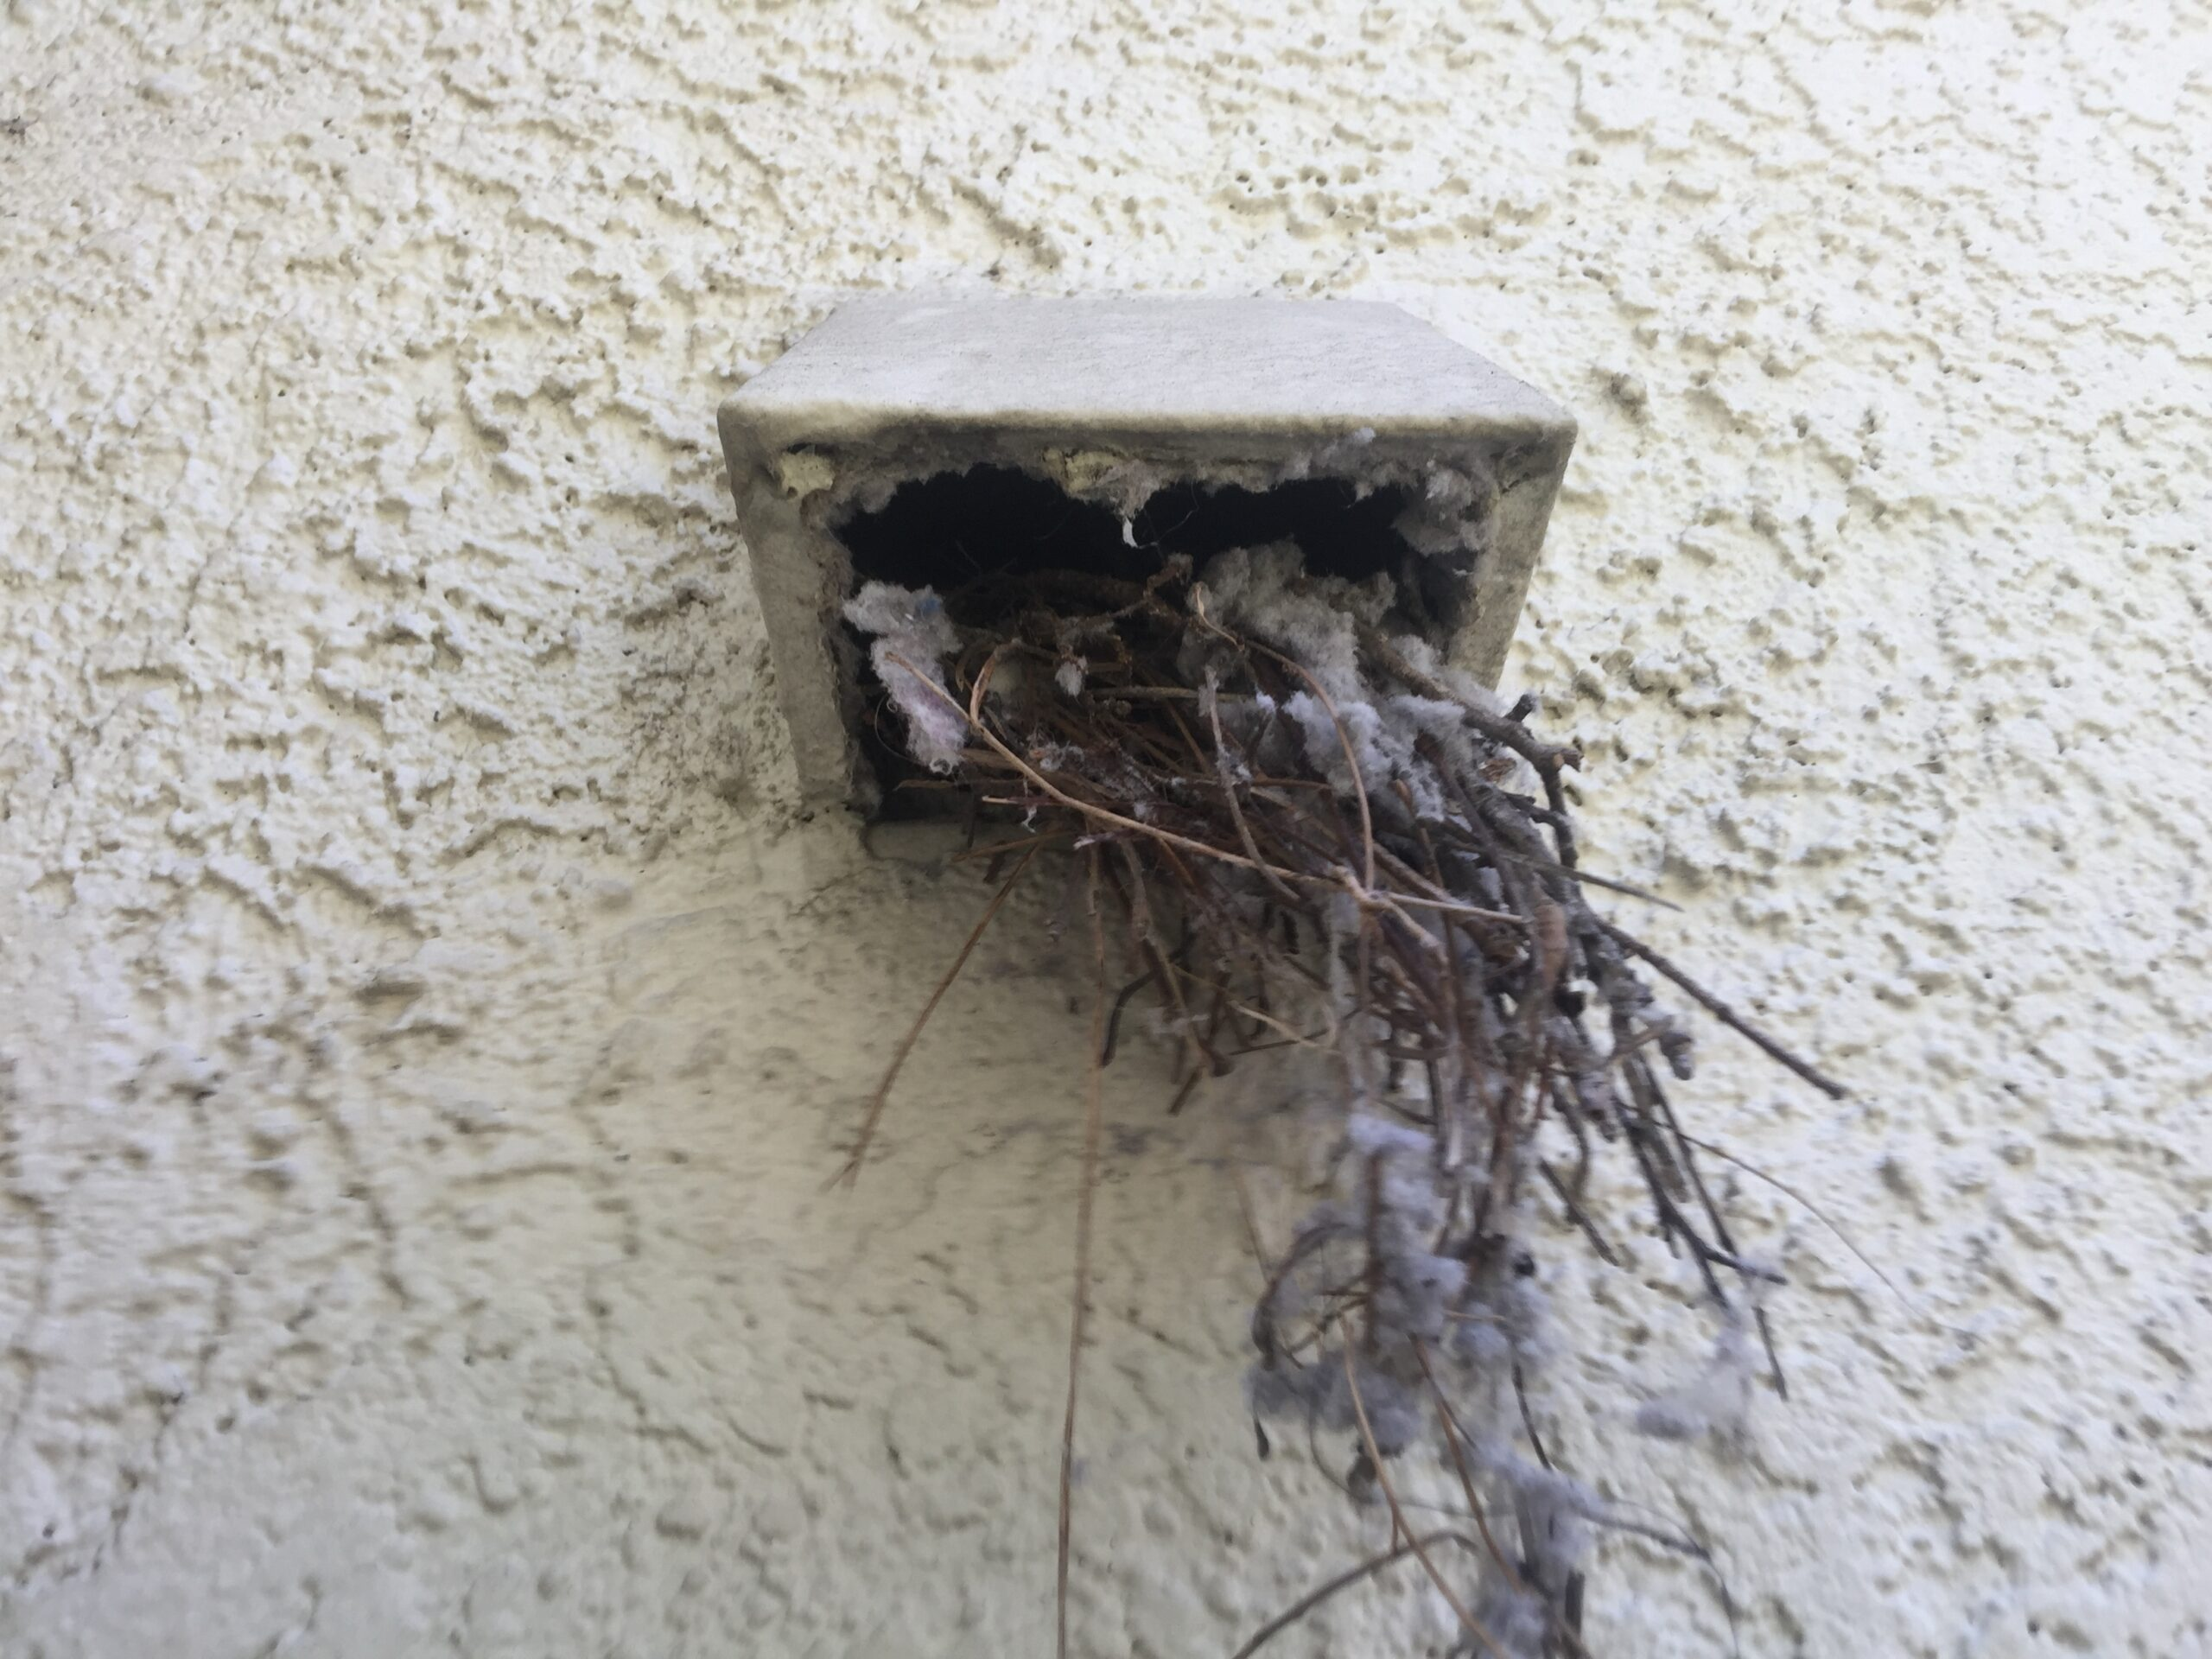 Bird Nest in Dryer Vent Tube removed by A-1 Duct Cleaning & Chimney Sweep in Orange County, CA